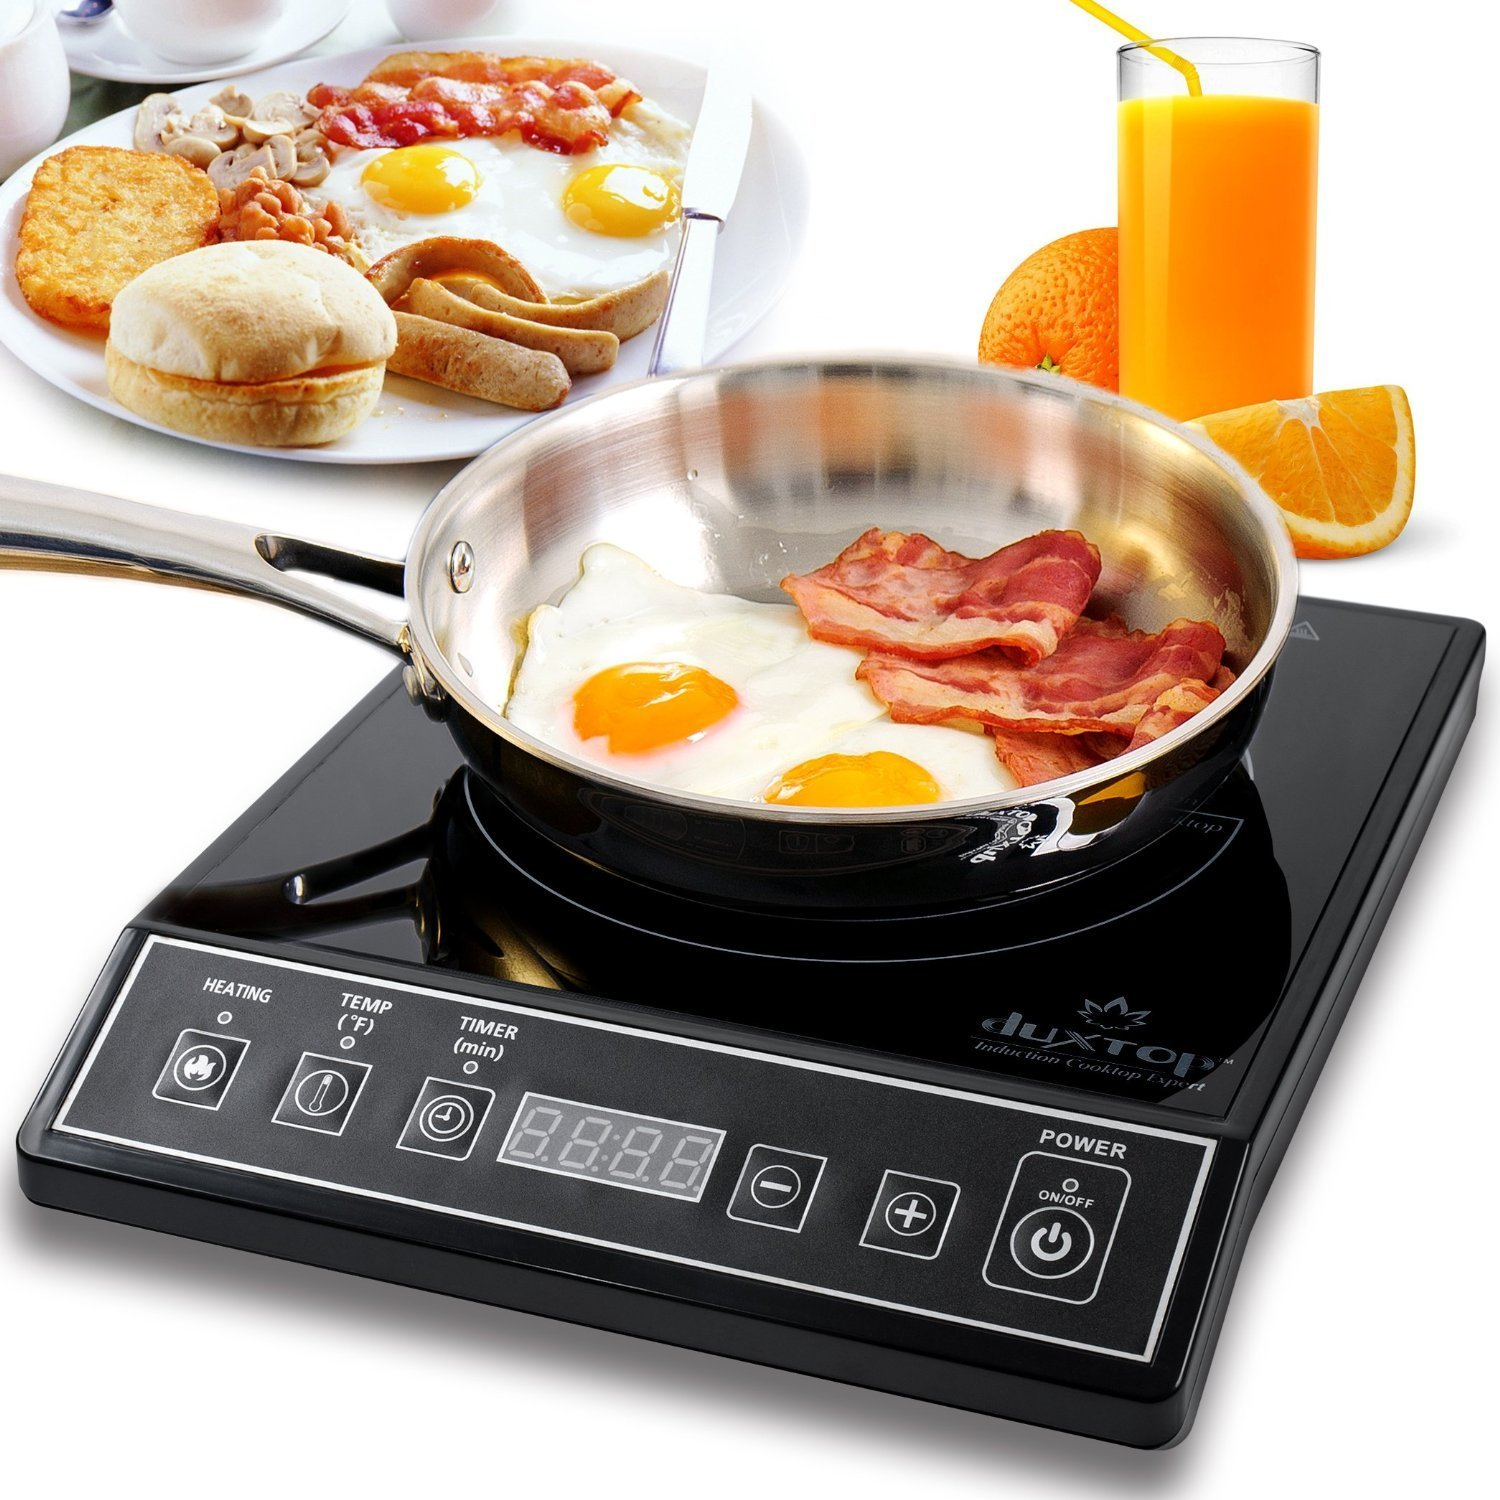 SECURA 9100MC INDUCTION COOKTOP Reviews